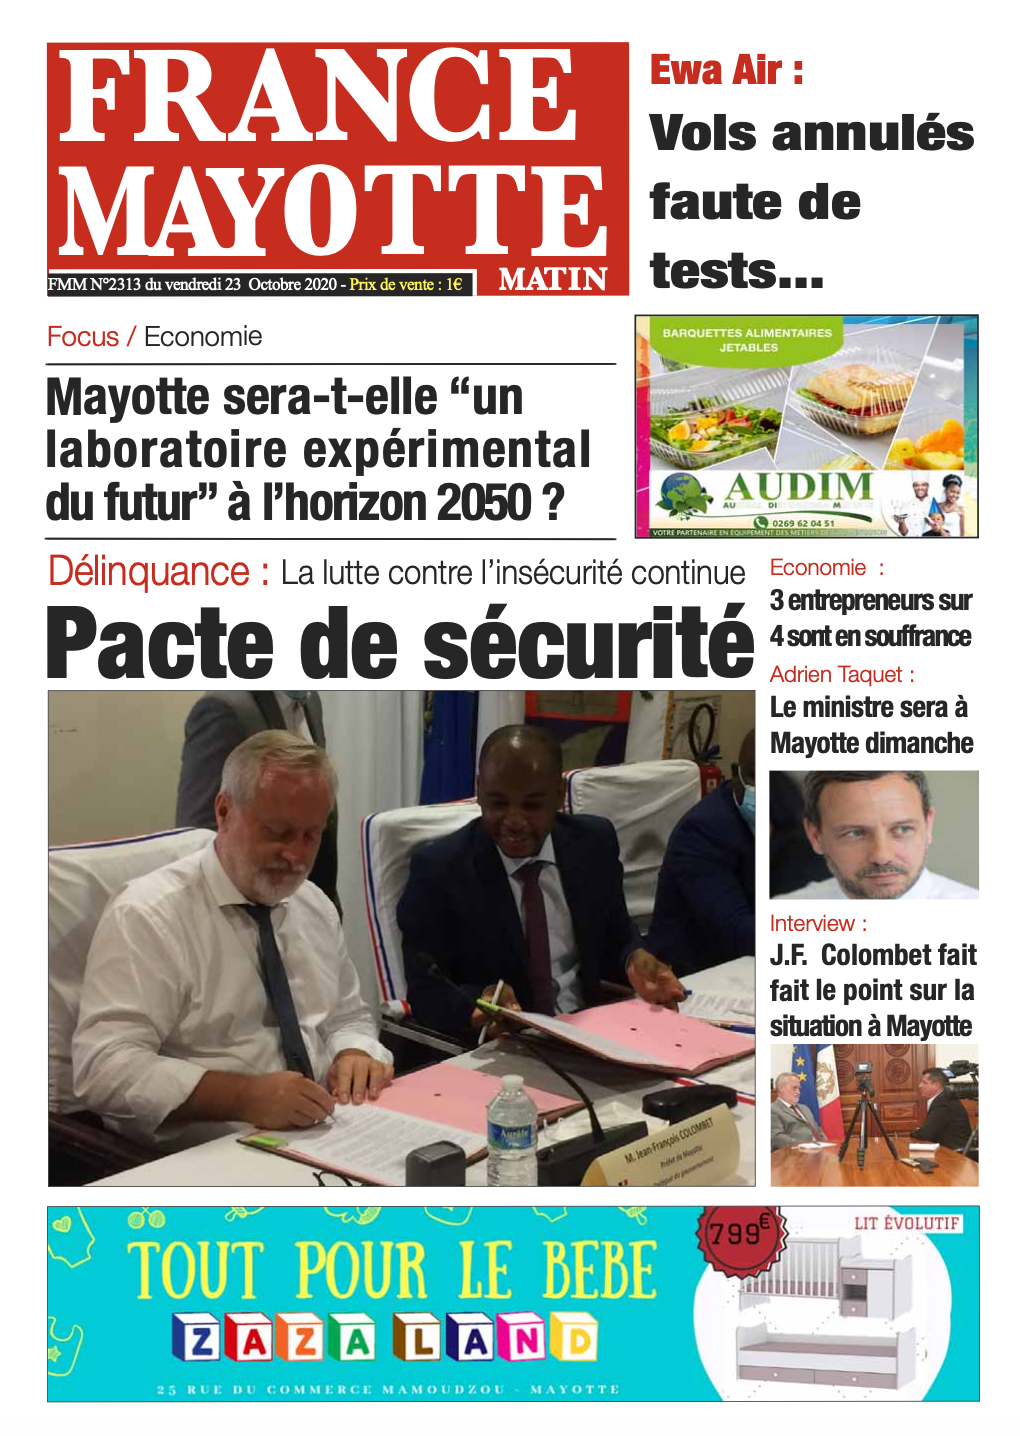 France Mayotte Vendredi 23 octobre 2020